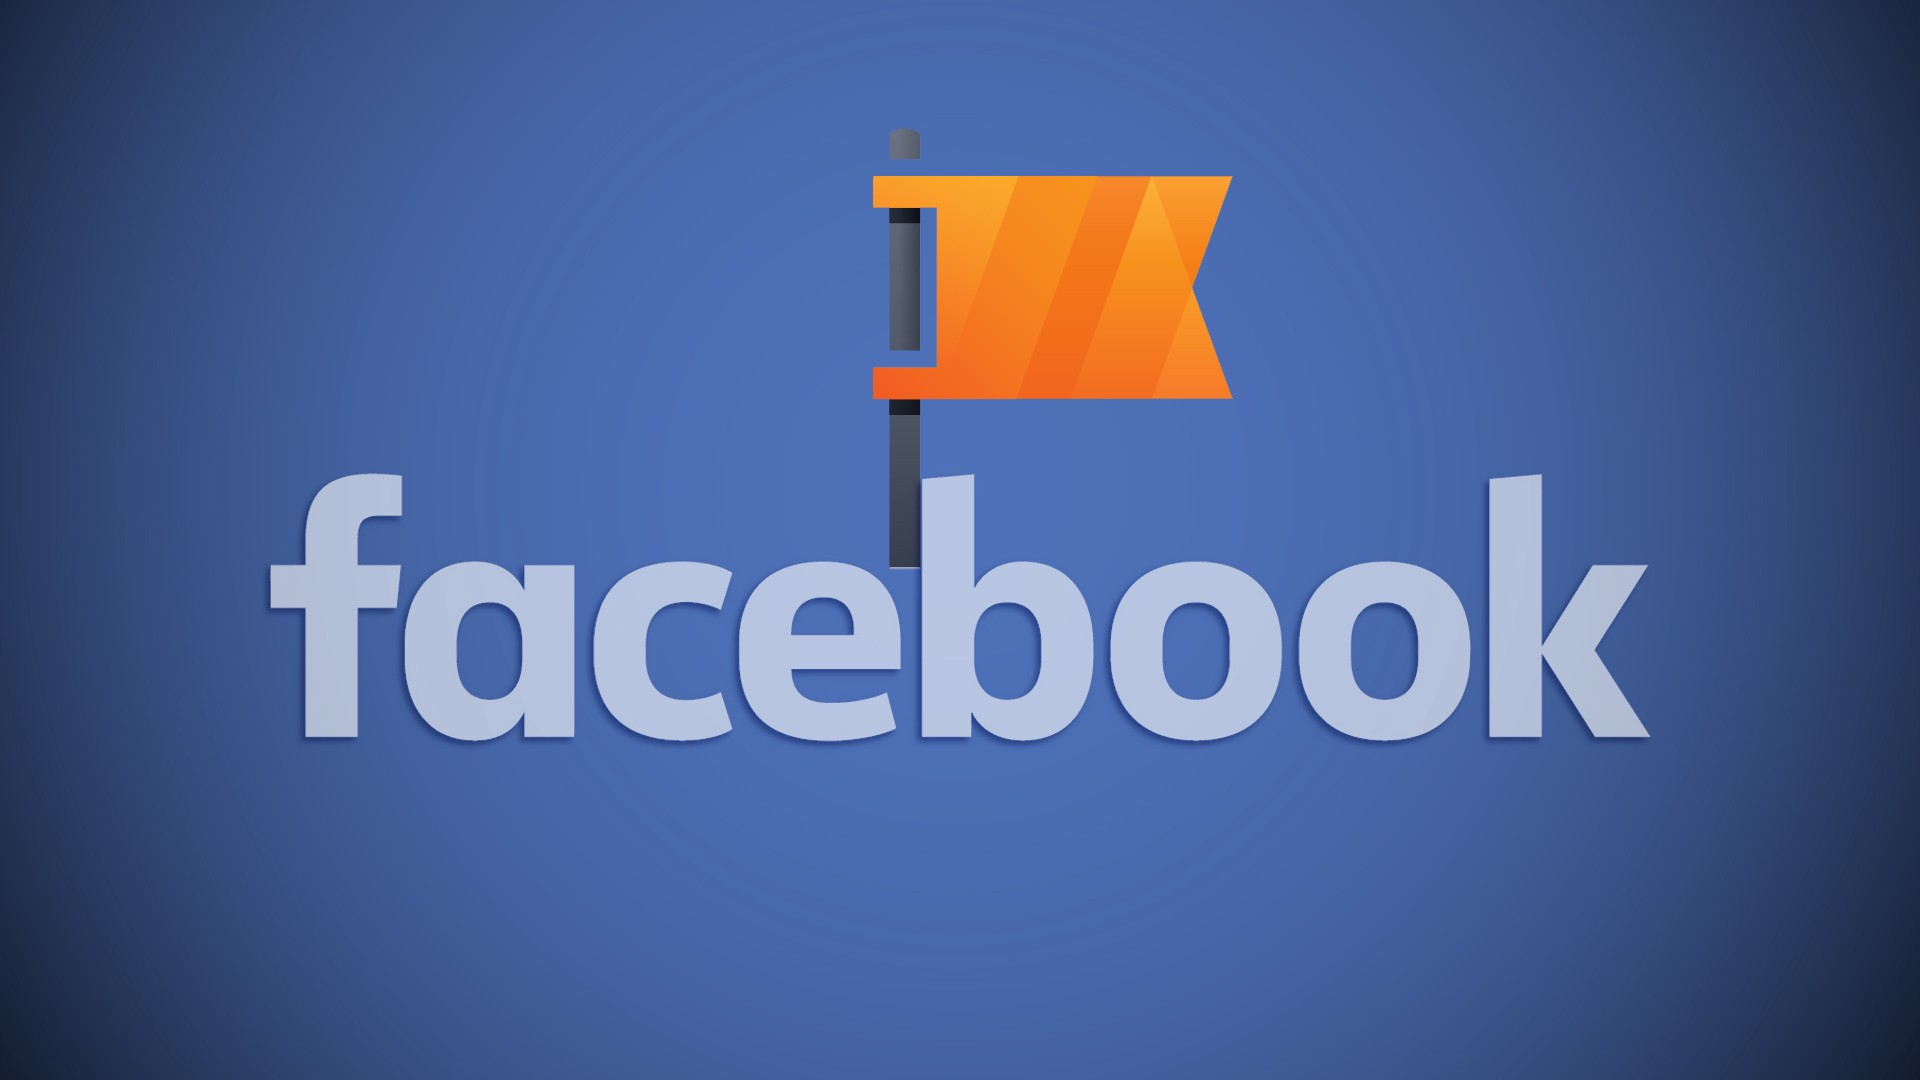 You can buy a Facebook page with likes to boost your business in the best way